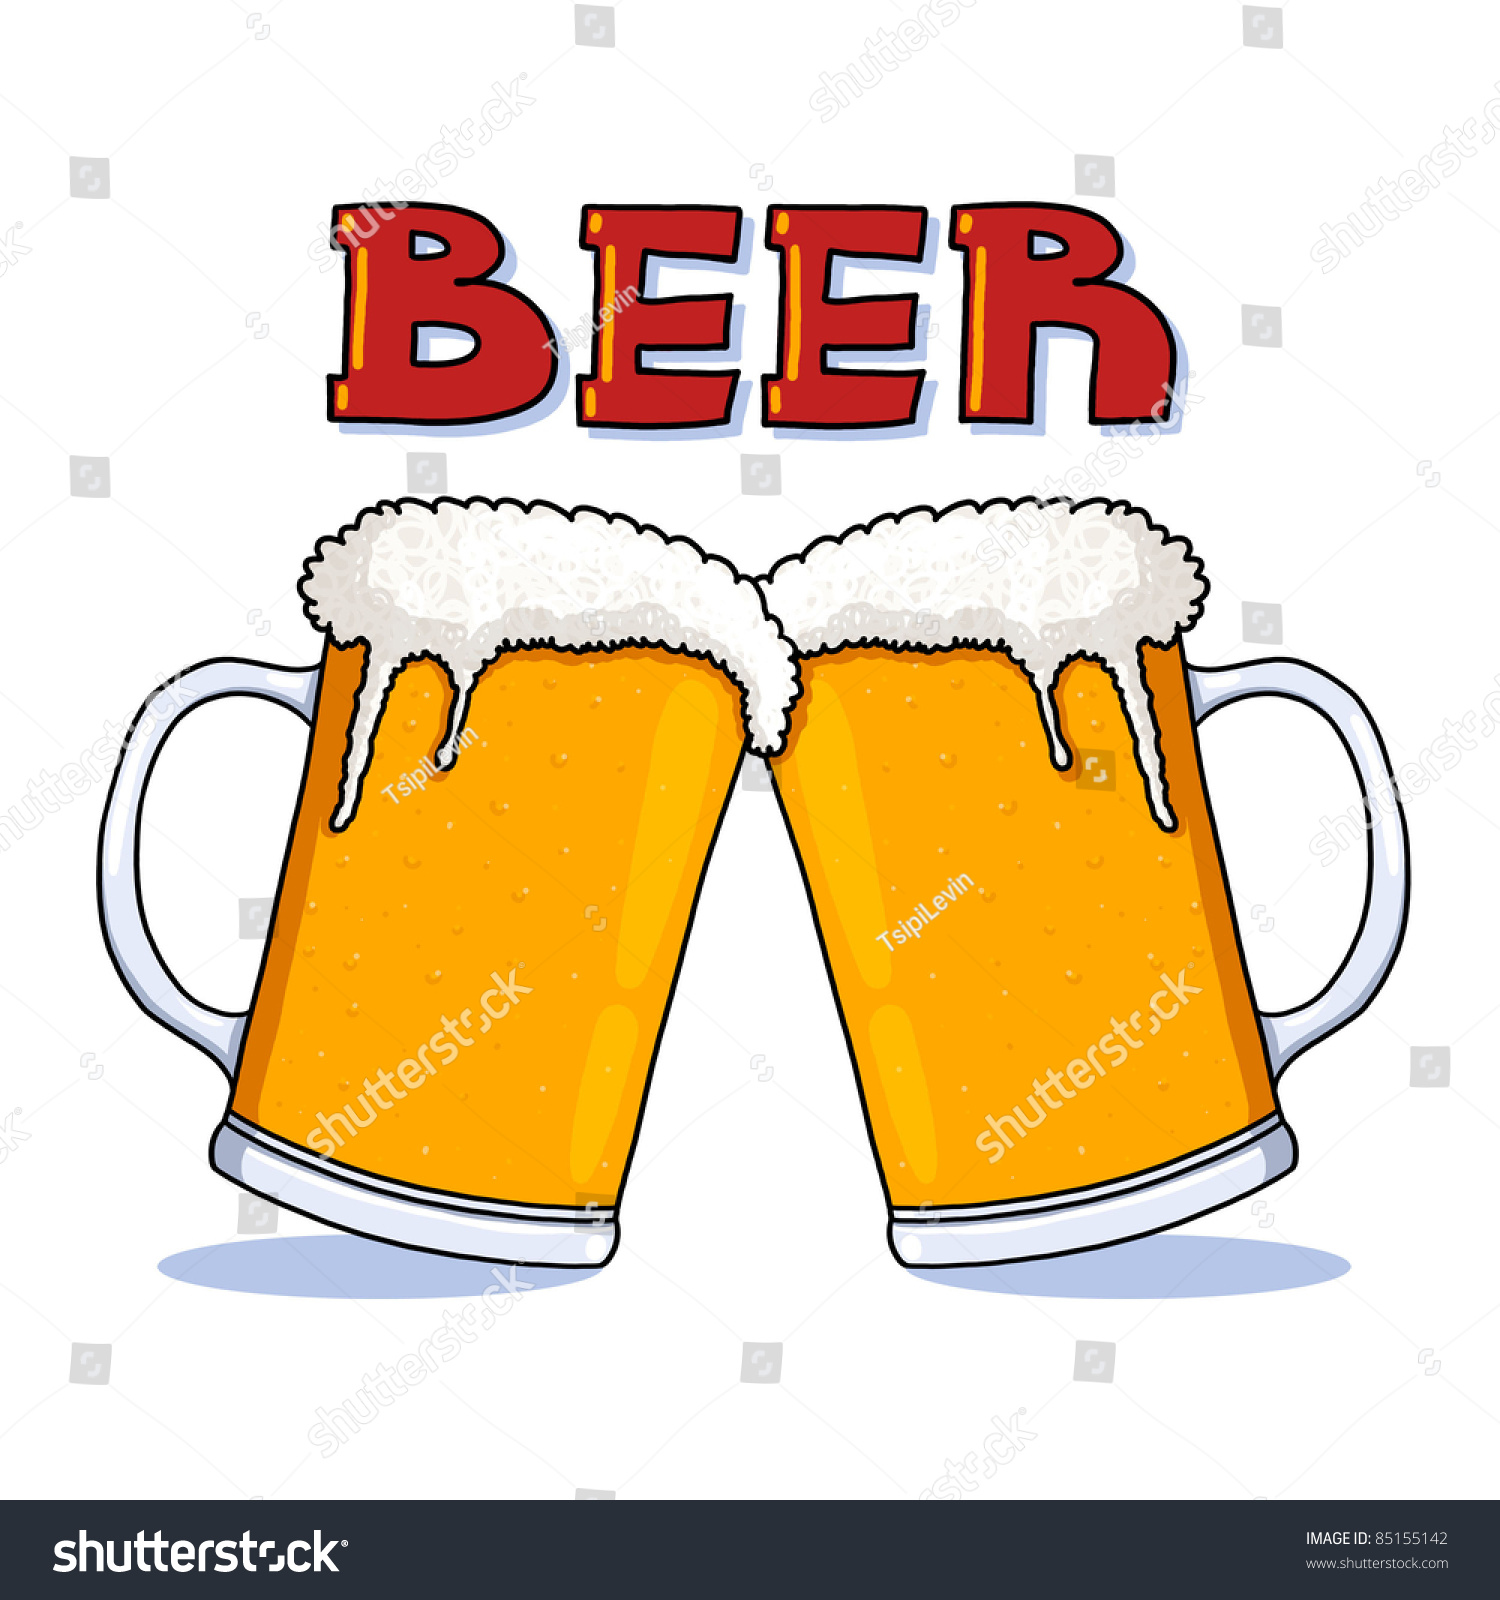 Beer Glass Illustration Beer Mugs Freehand Stock Illustration 85155142 - Shutterstock Animated Beer Cheers